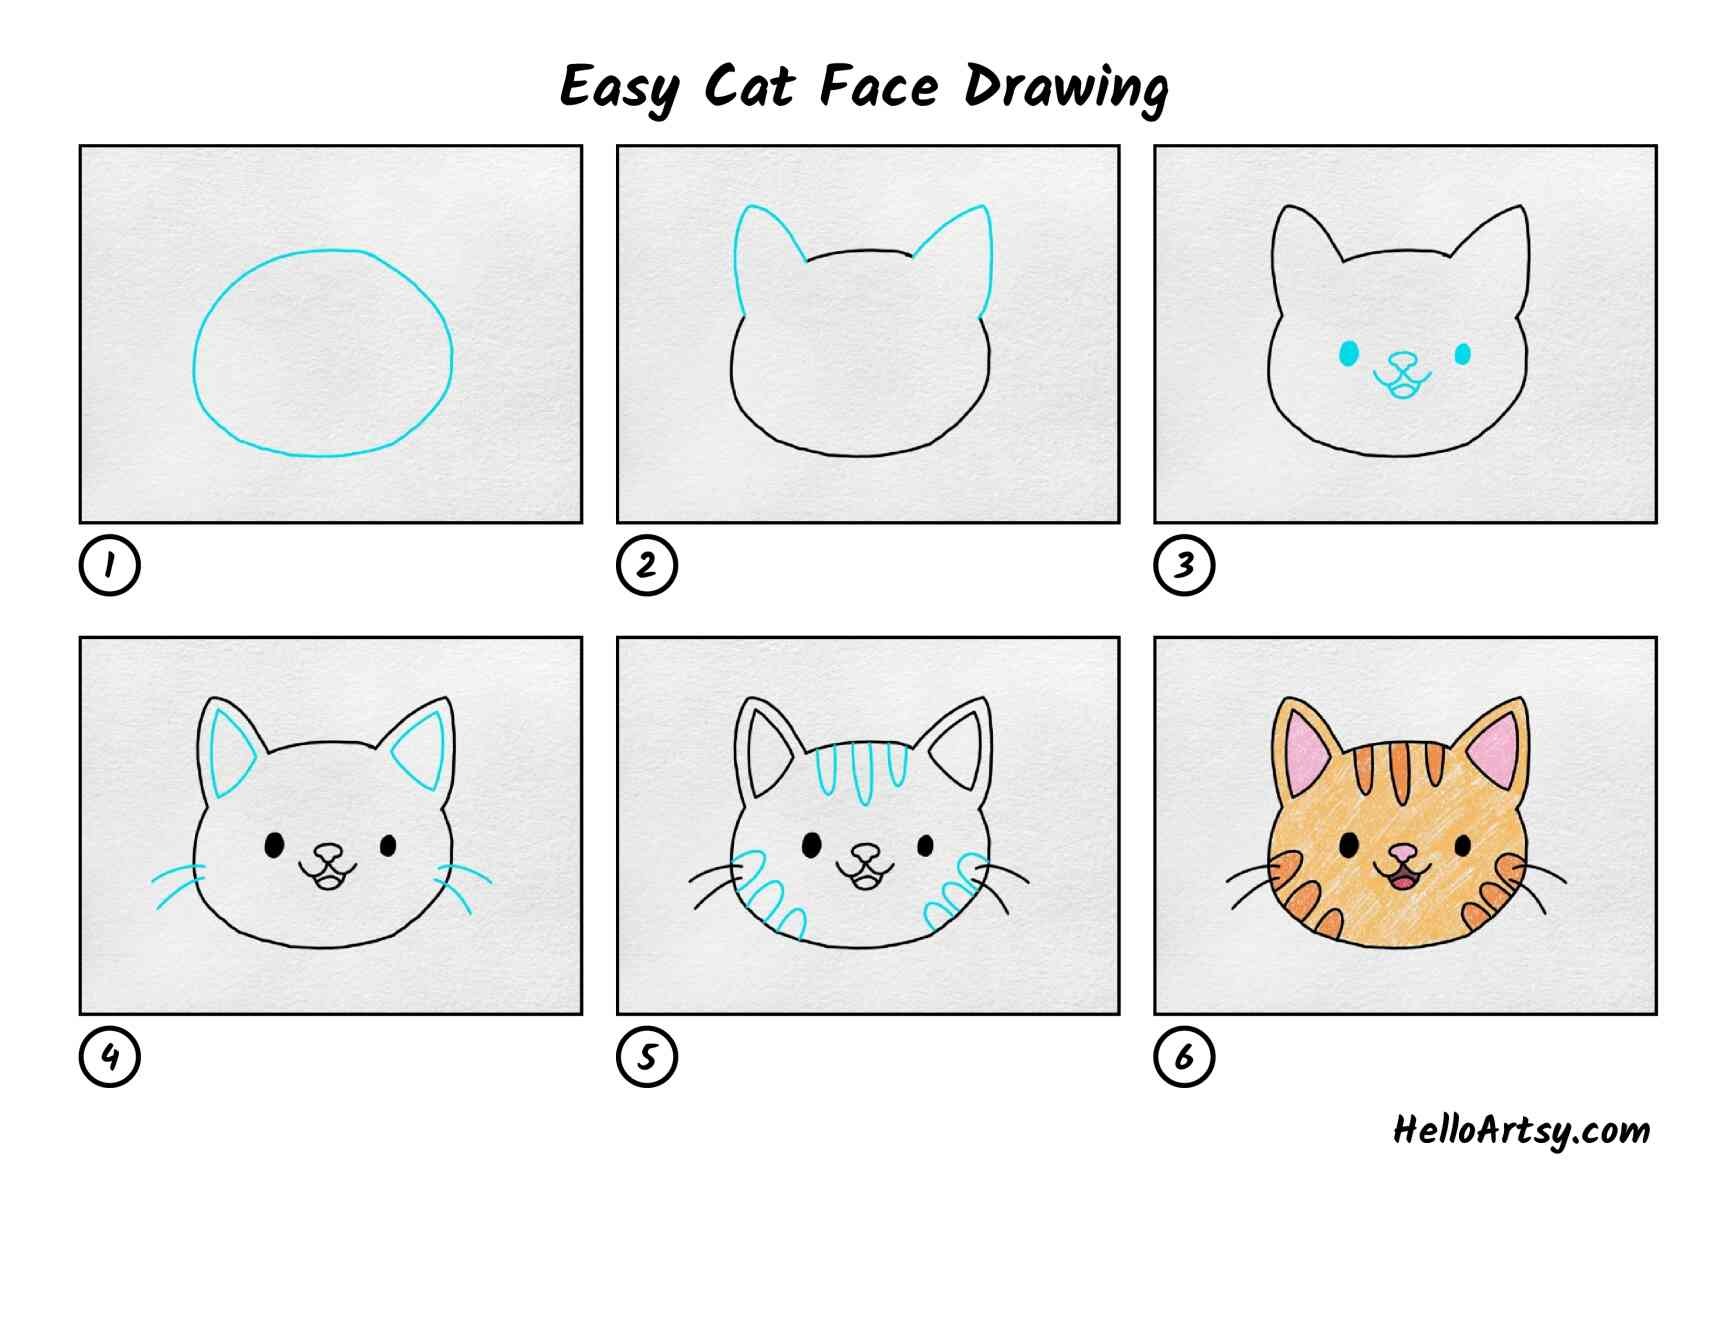 Easy Cat Face Drawing: All Steps